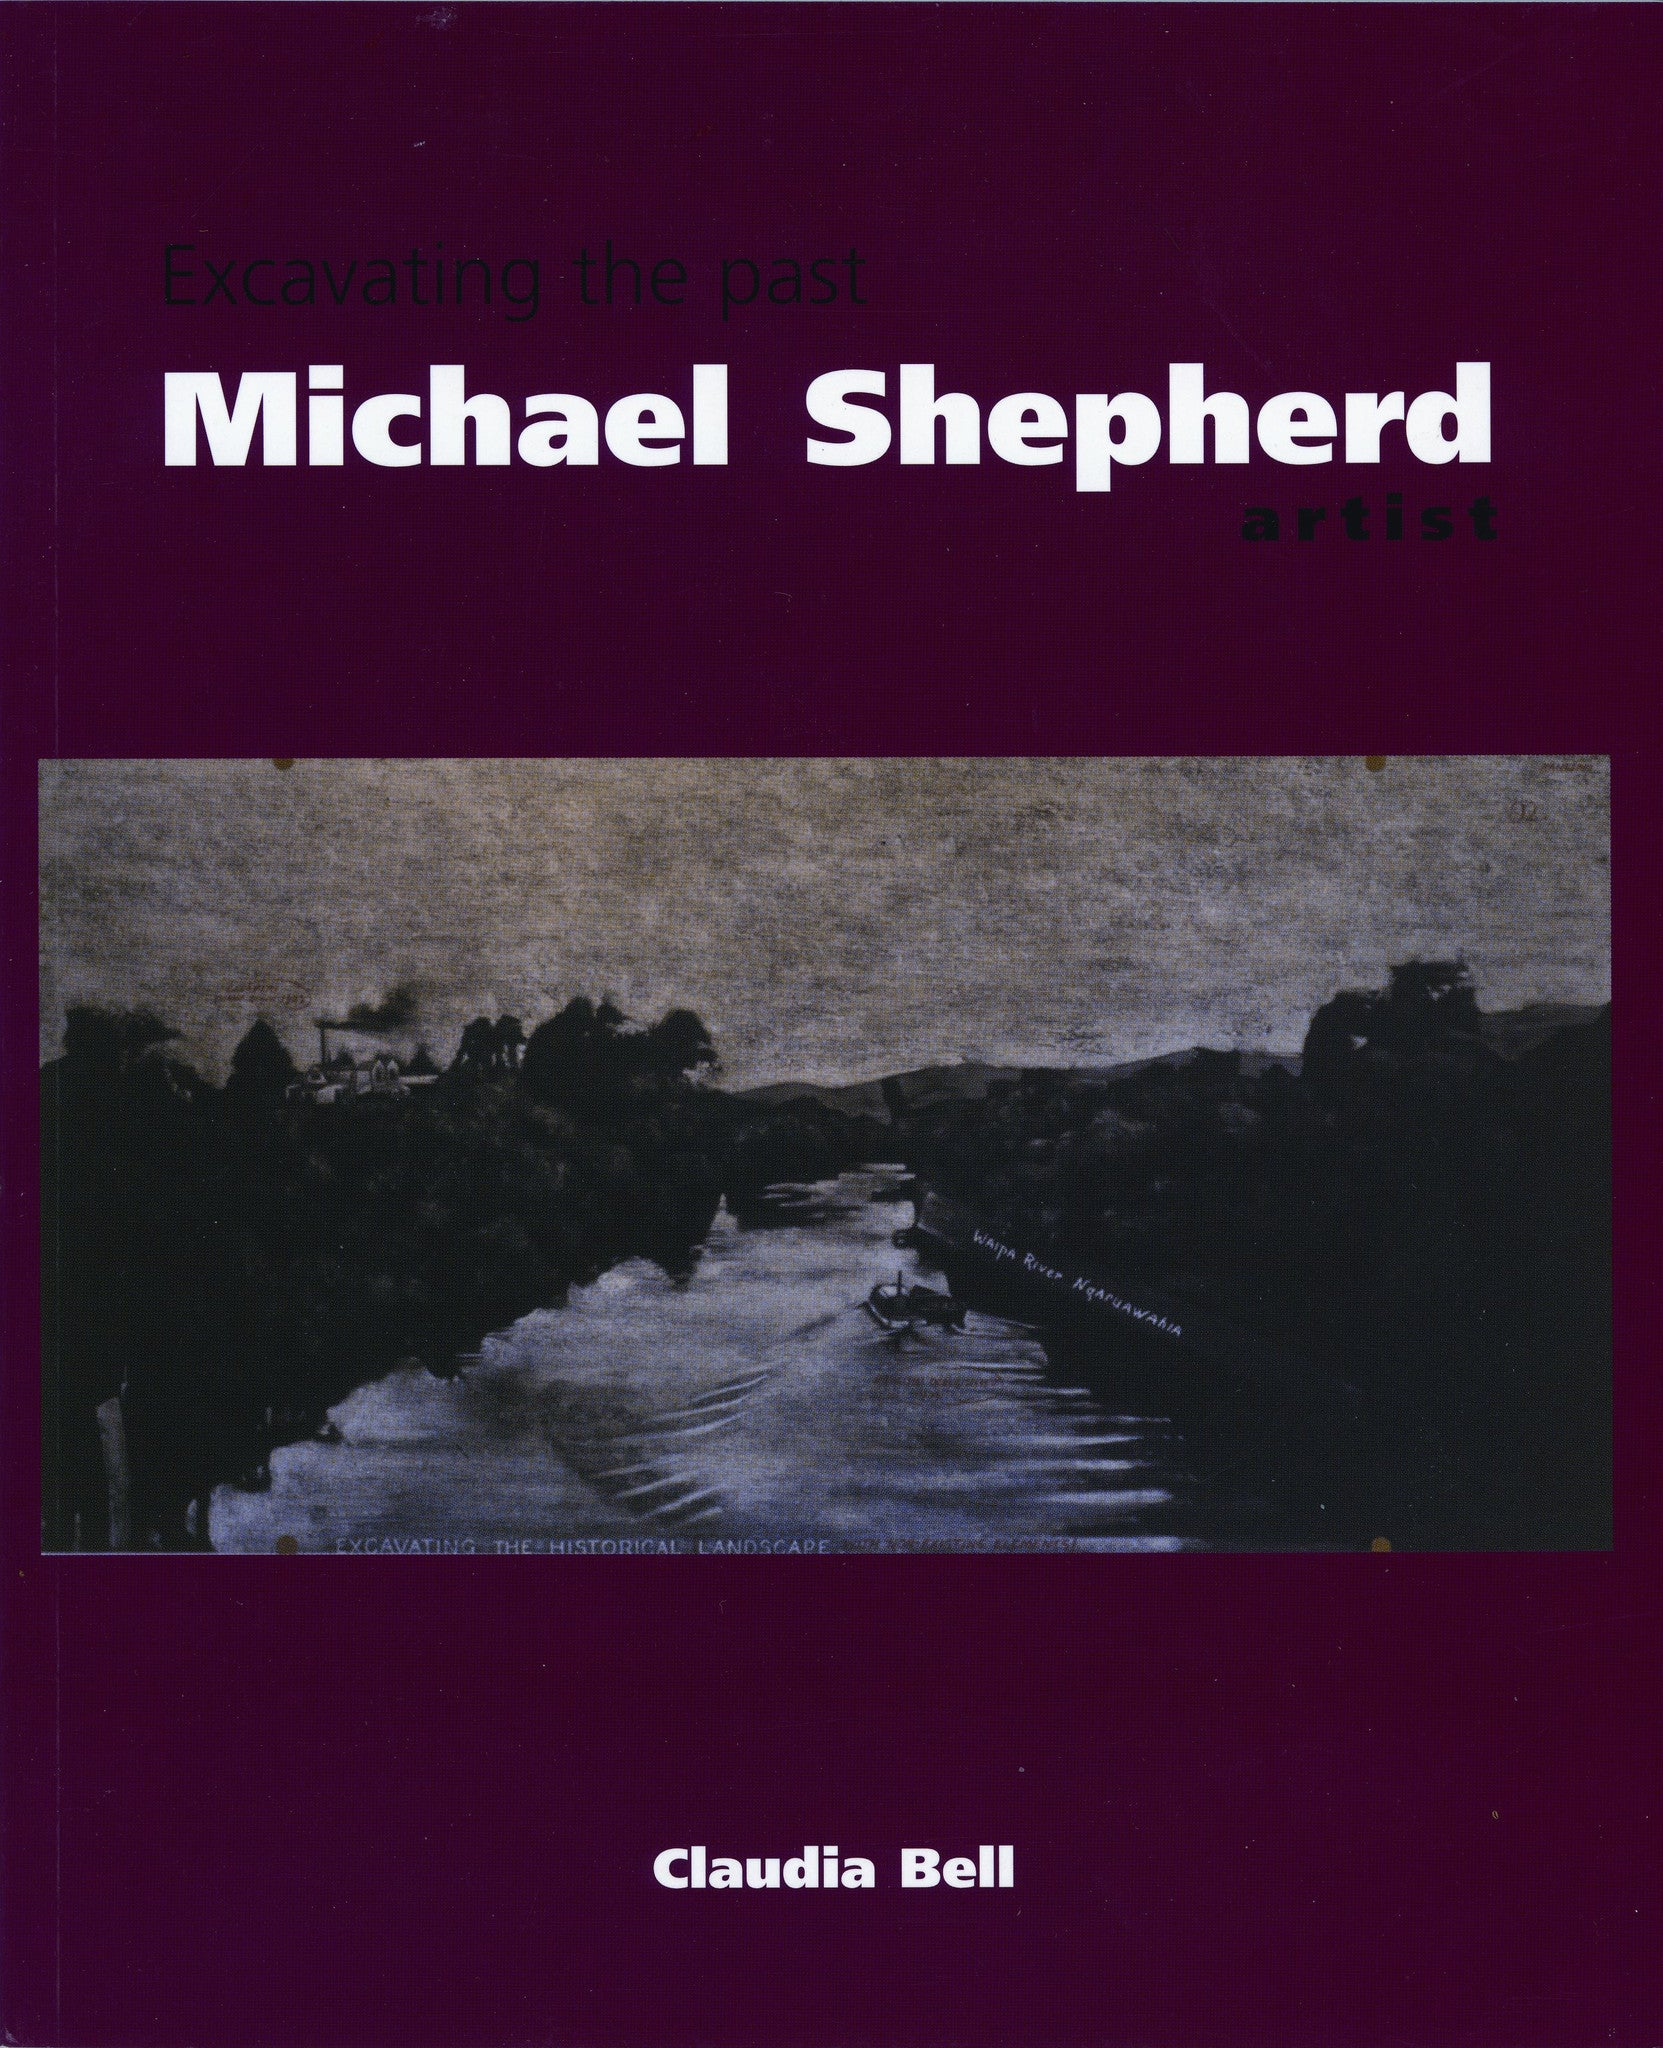 Excavating The Past: Michael Shepherd, Artist